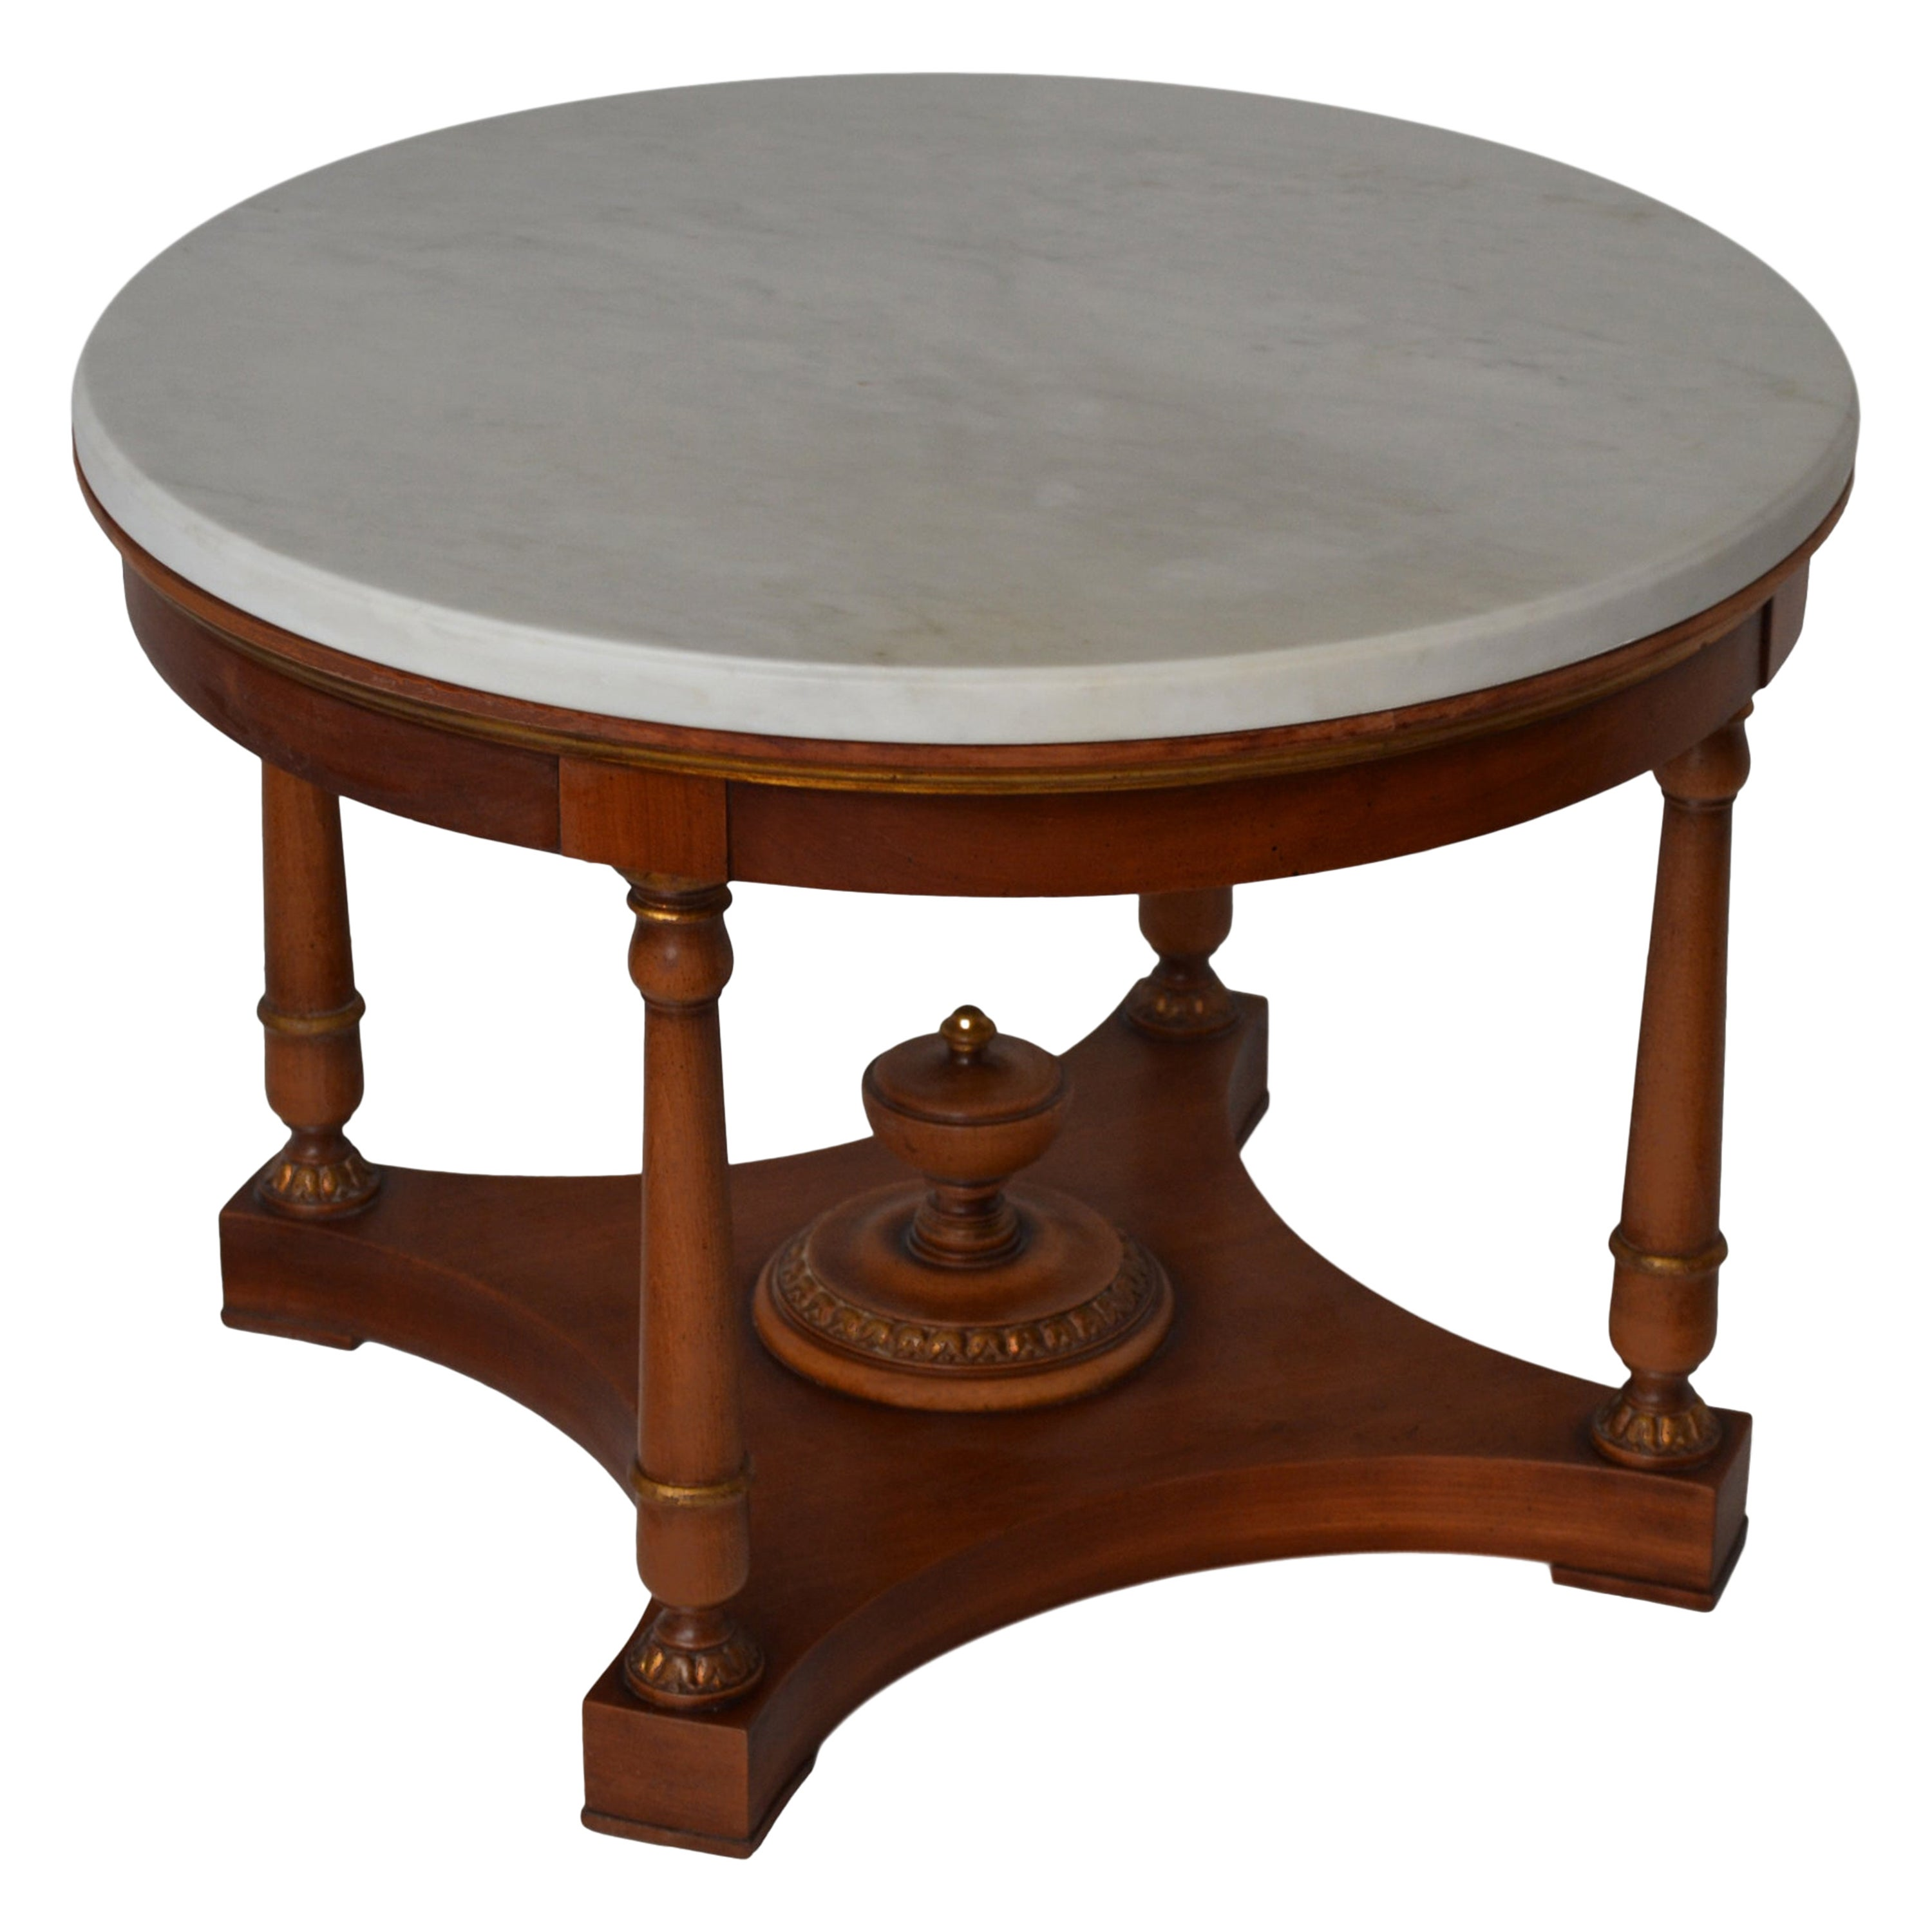 Round Coffee table white marble top Cherrywood Base Cupioli handmade in Italy